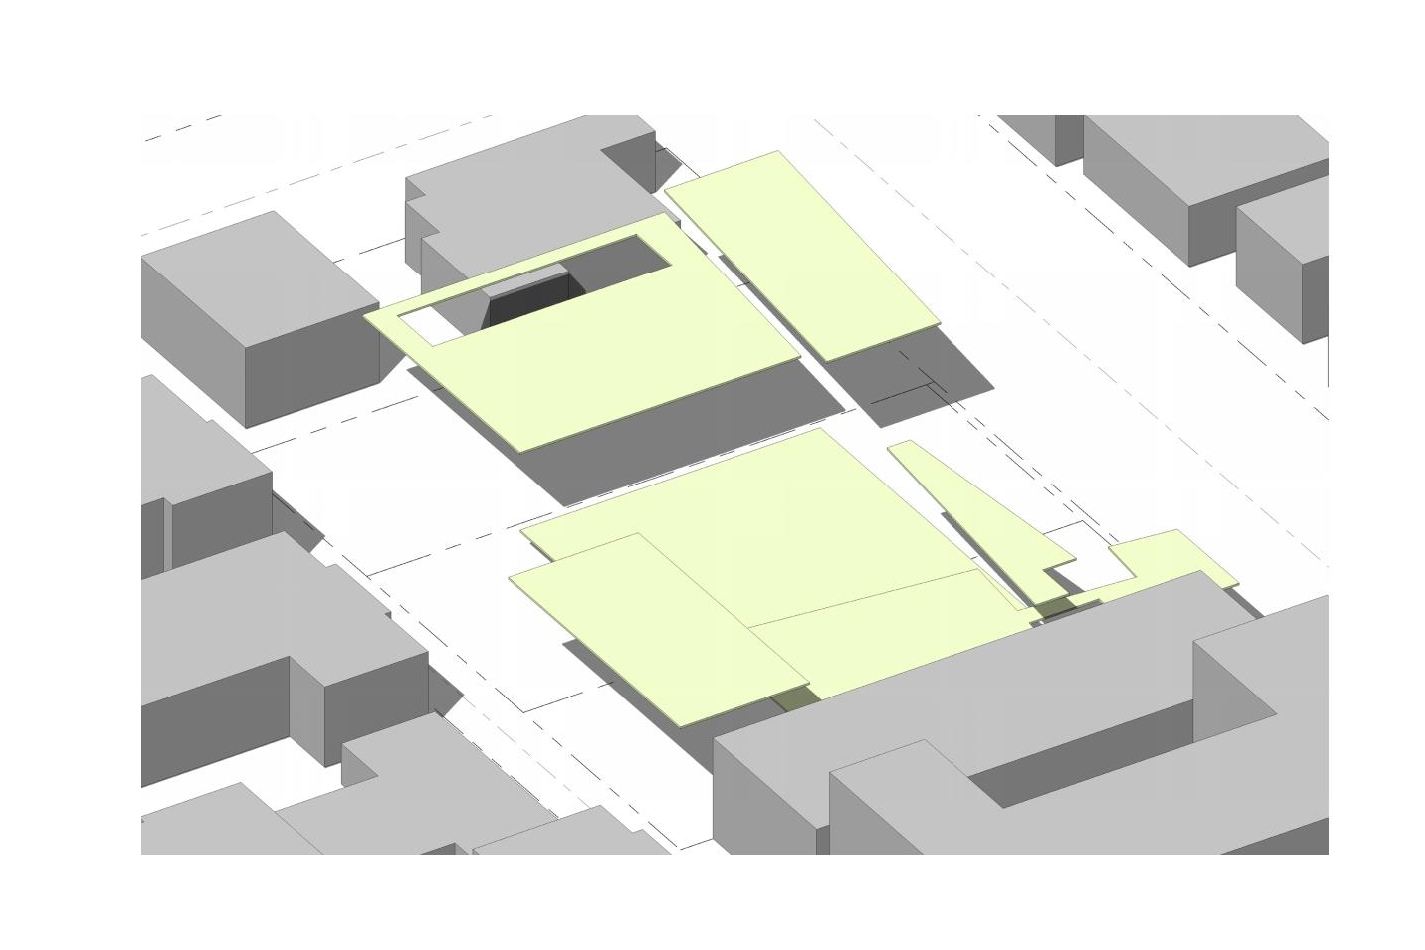 Outdoor Space Distribution  Existing outdoor space: 7100SF  Proposed outdoor space: 16650SF